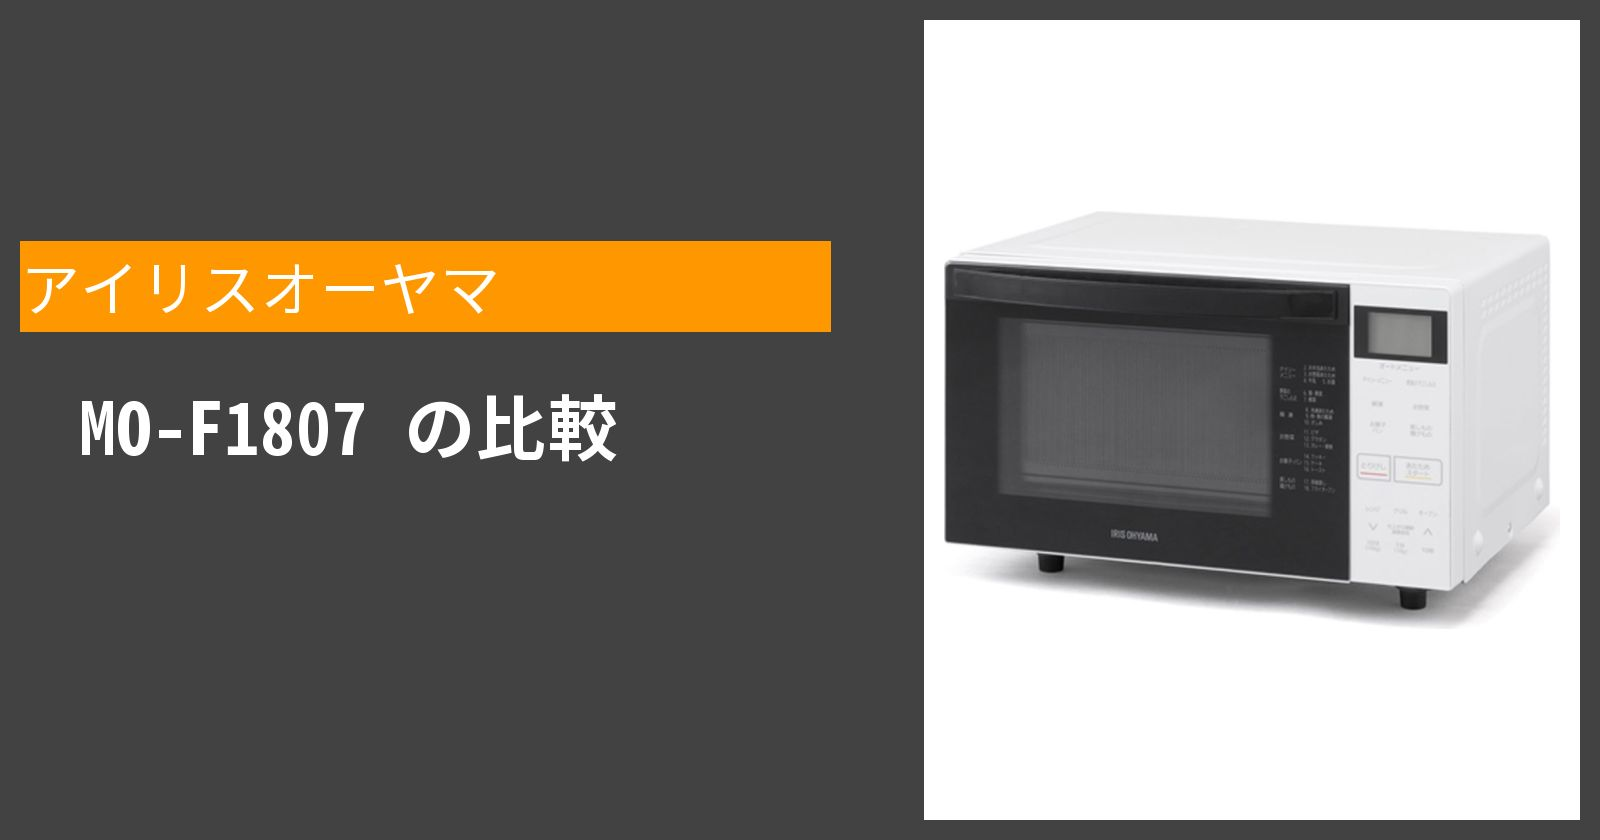 MO-F1807を徹底評価